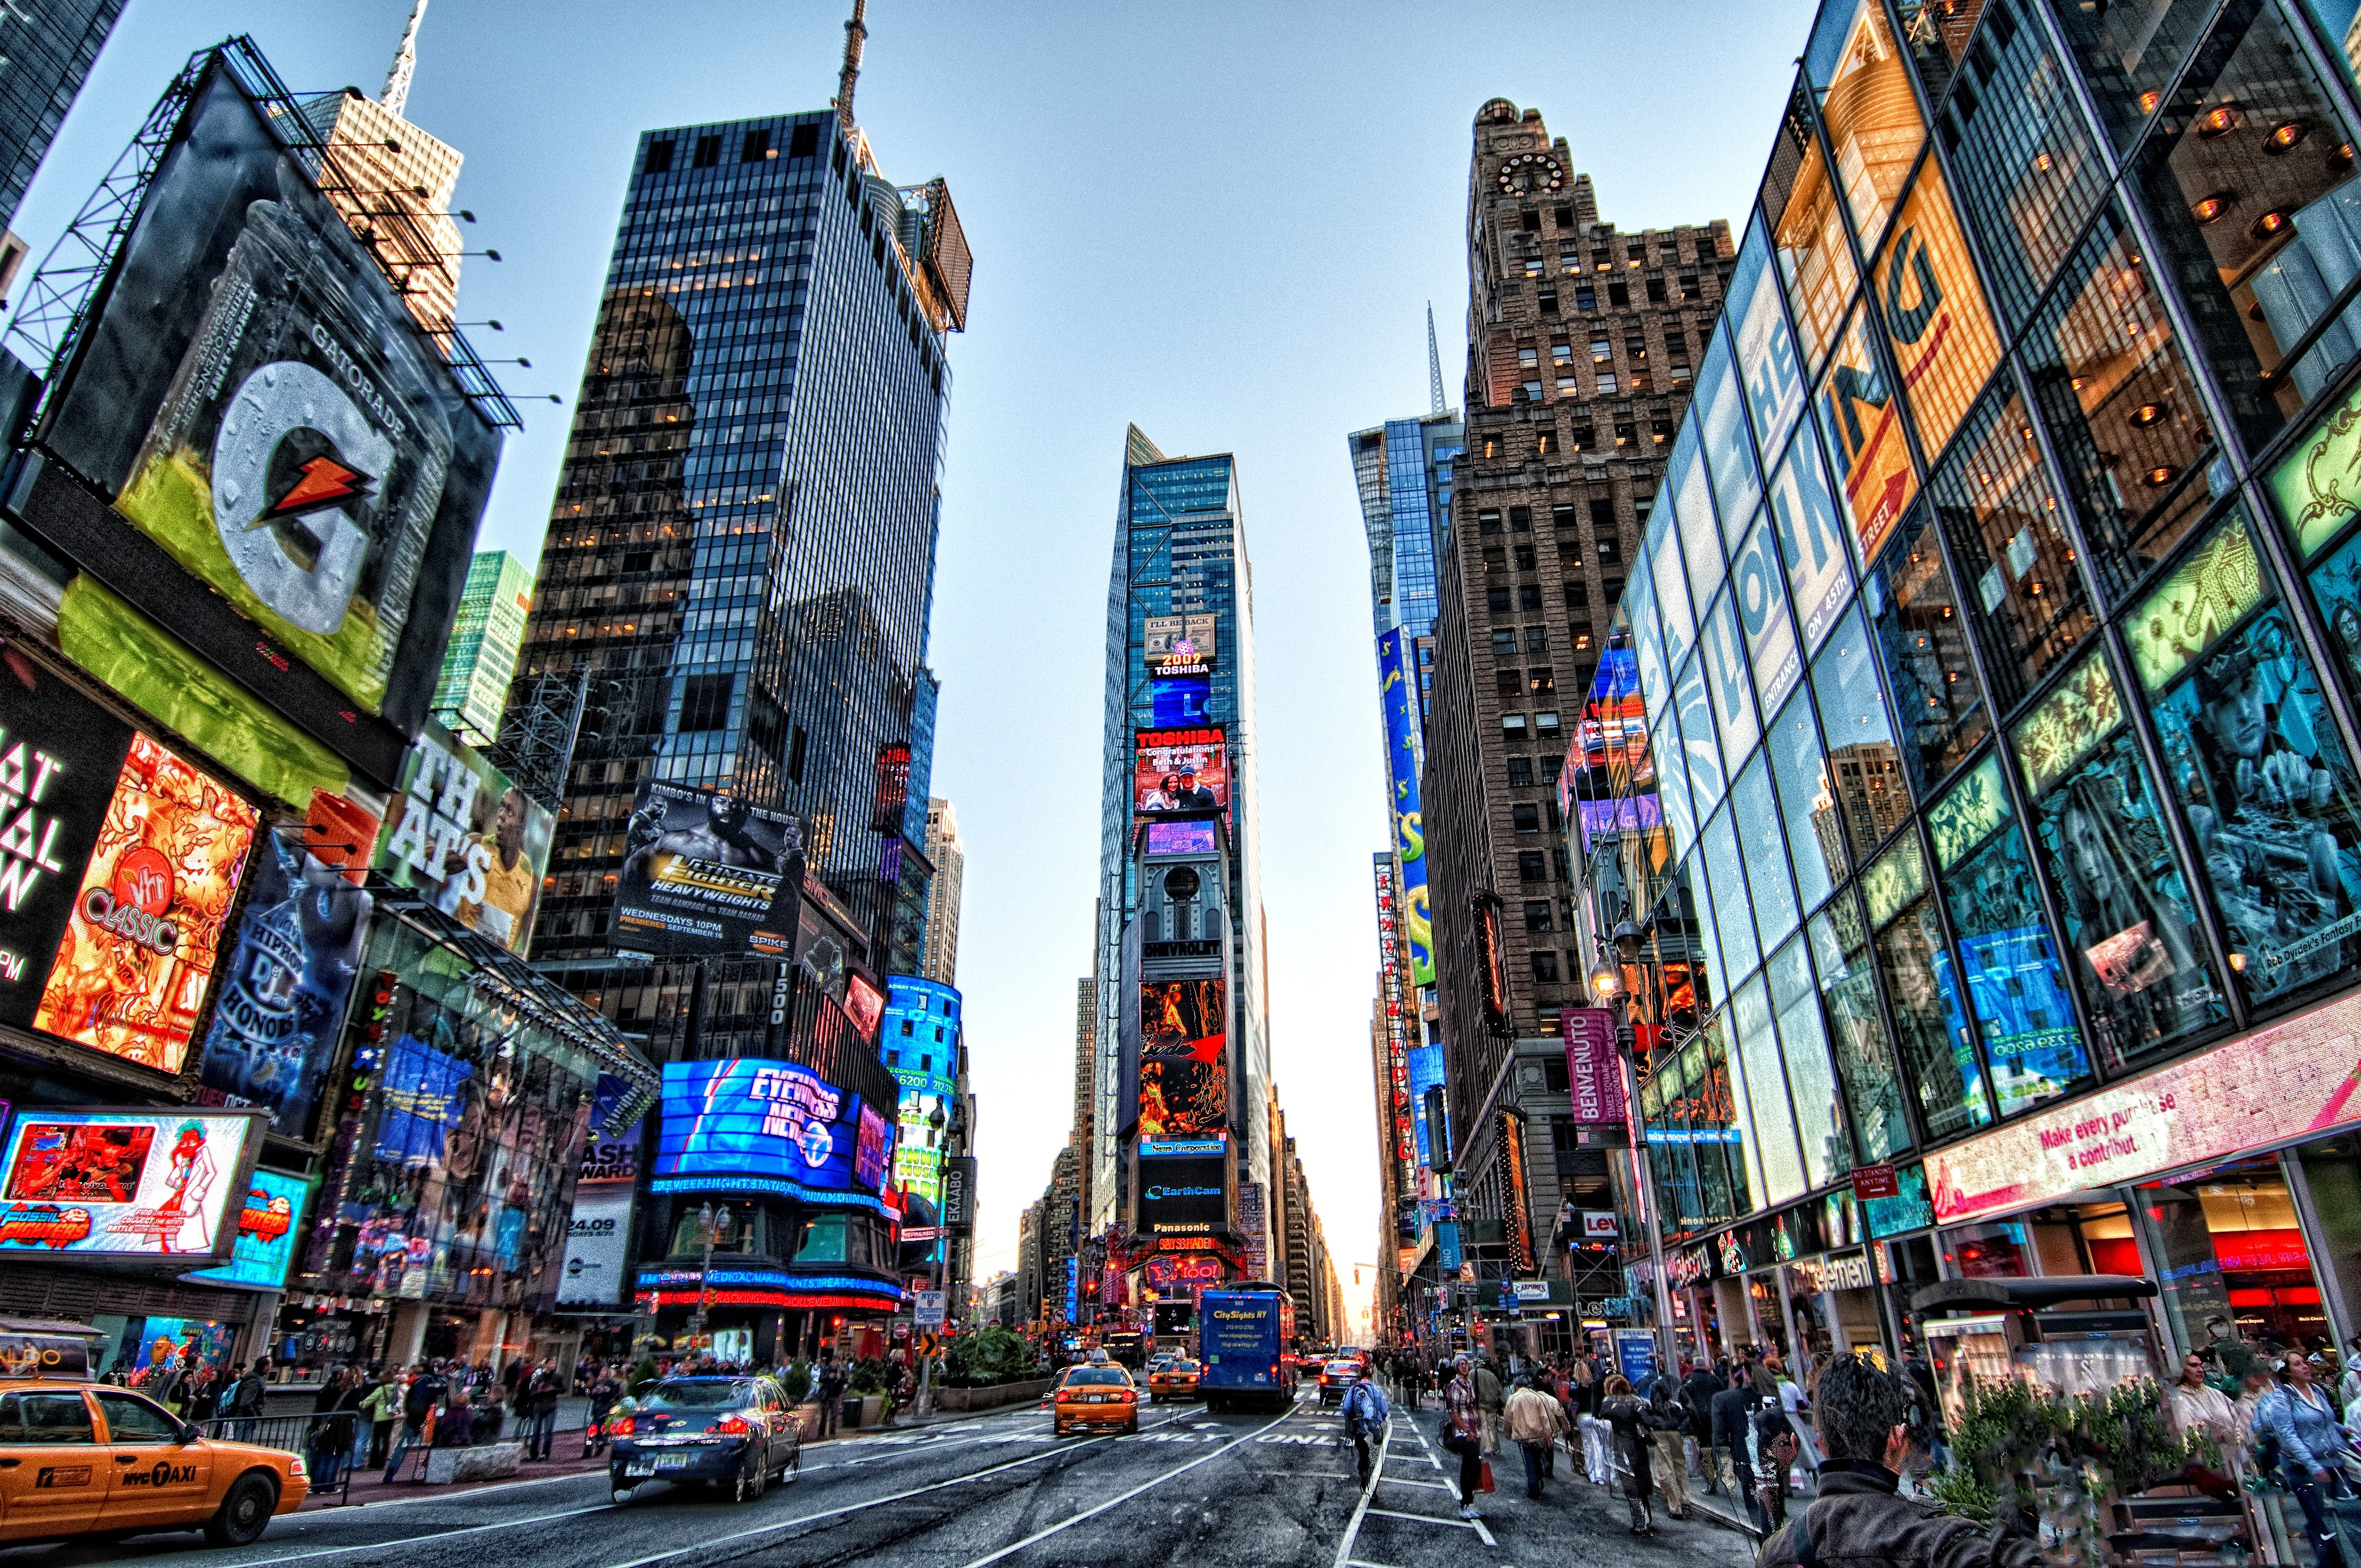 Nyc Times Square Hd Wallpapers Top Free Nyc Times Square Hd